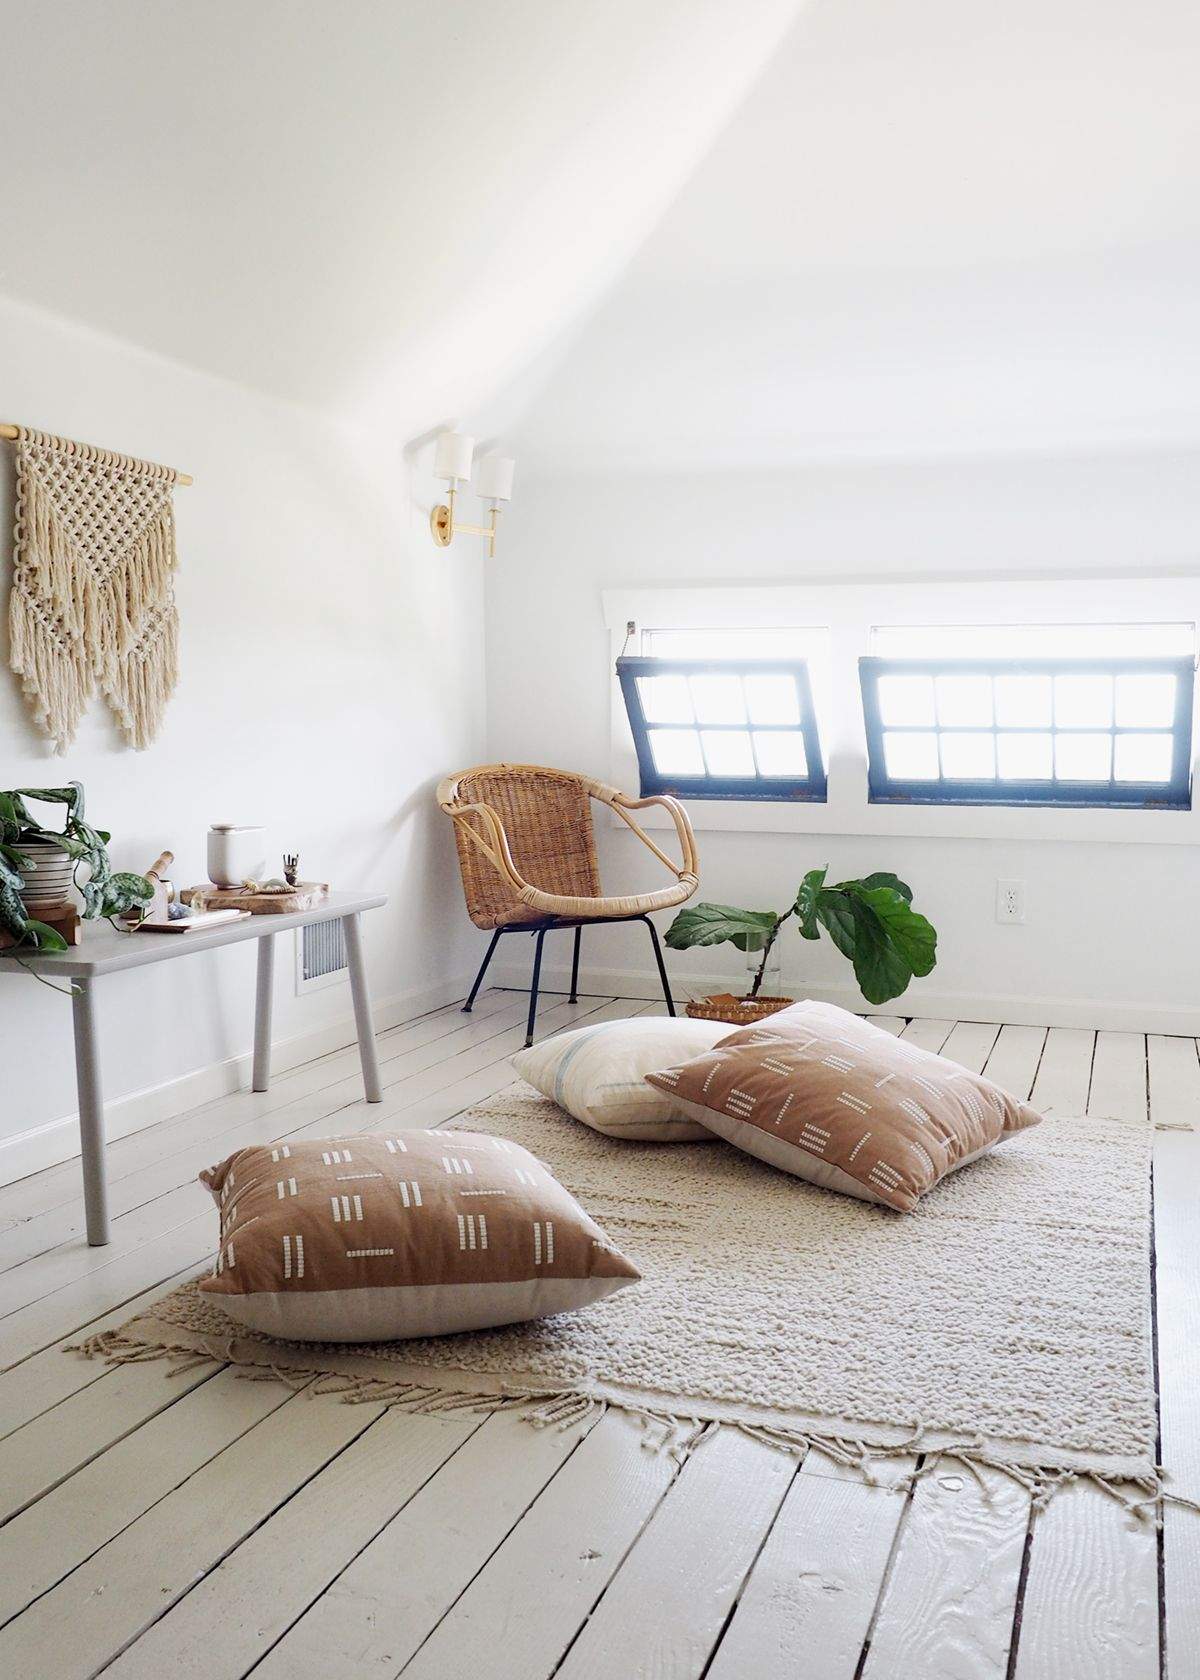 How To Style A Calm Minimal Meditation Space Coco Kelley Meditation Space Meditation Rooms Zen Meditation Space Meditation room decor meditation